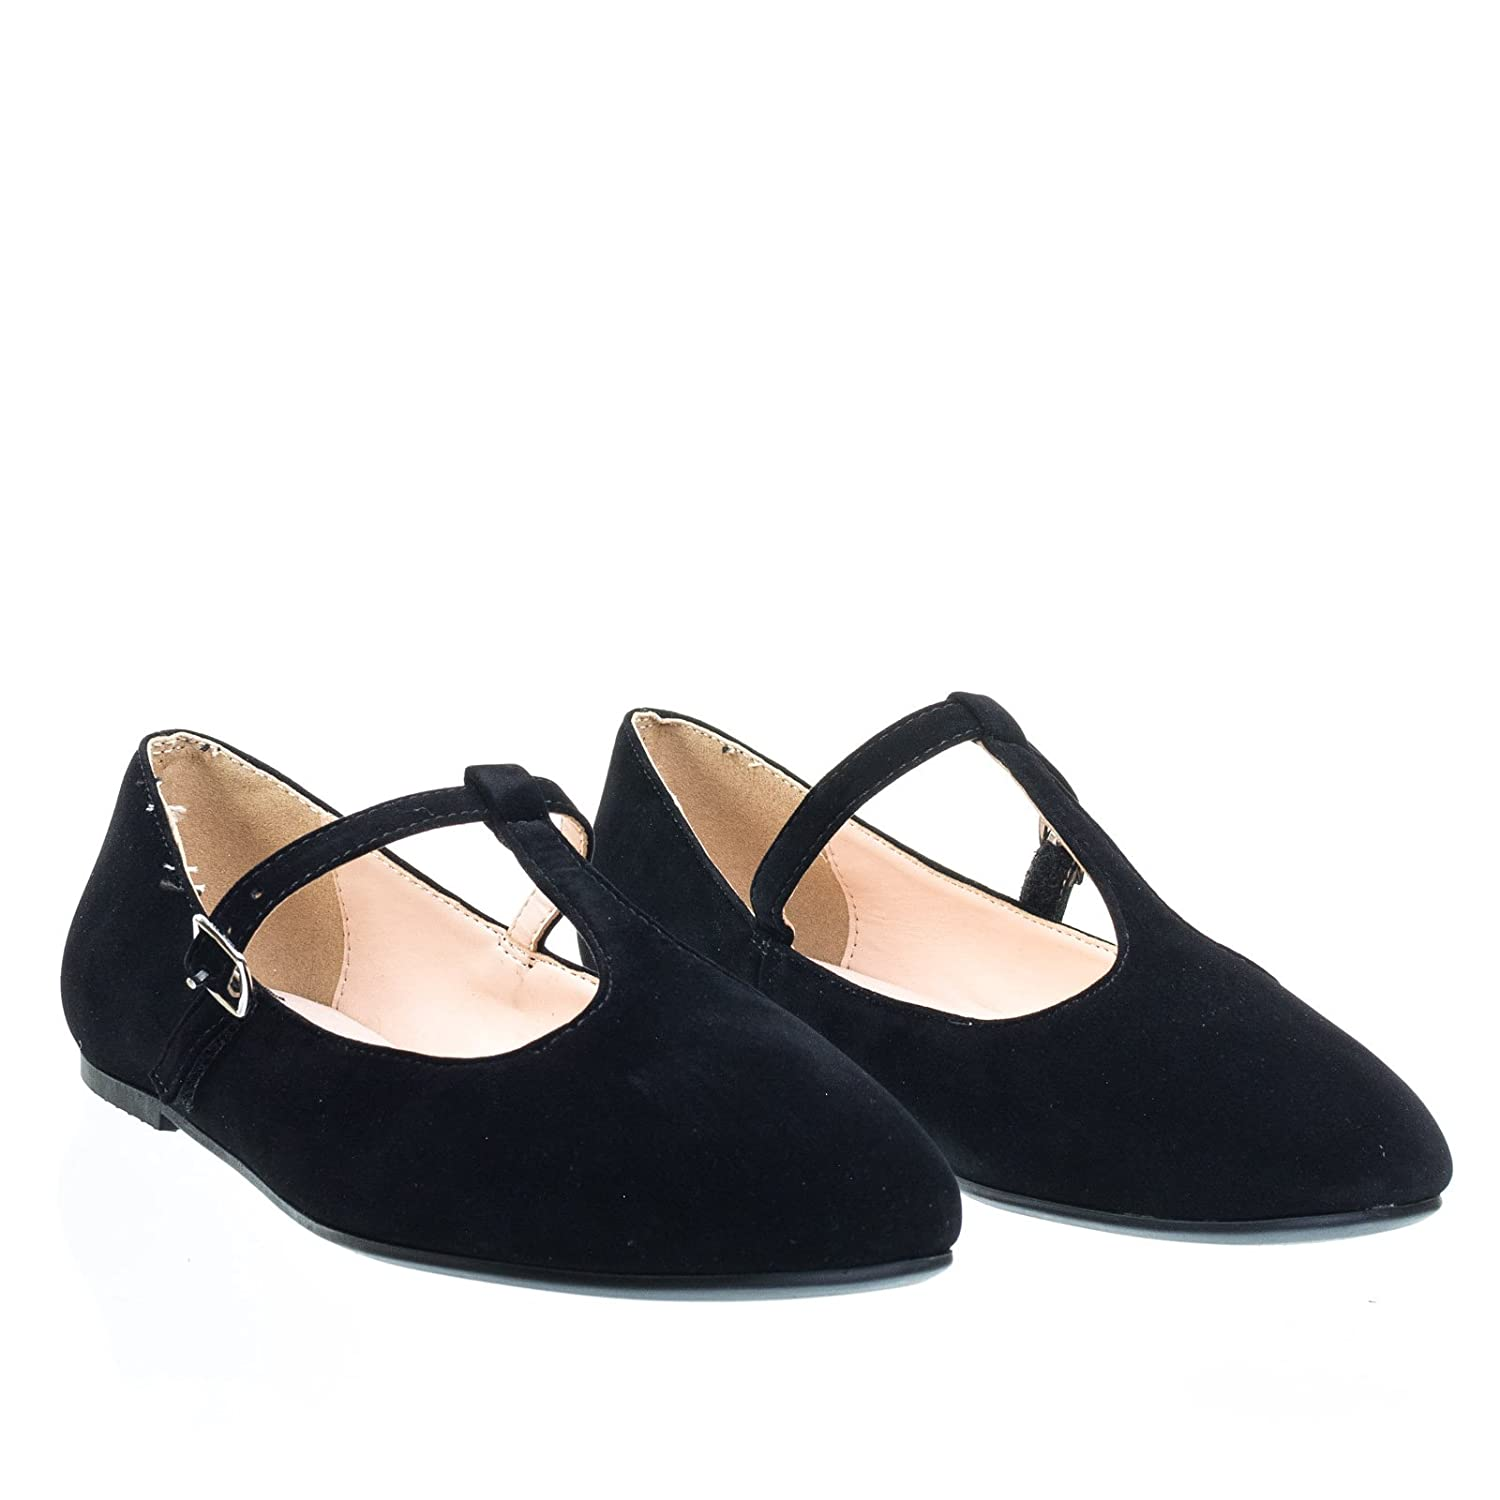 8017b1bb9 Amazon.com | City Classified Ballet T-Strap Mary-Jane Flats. Women's  Ballerina Round Toe Comfort Flats, Color:BlackD, Size:5.5 | Flats